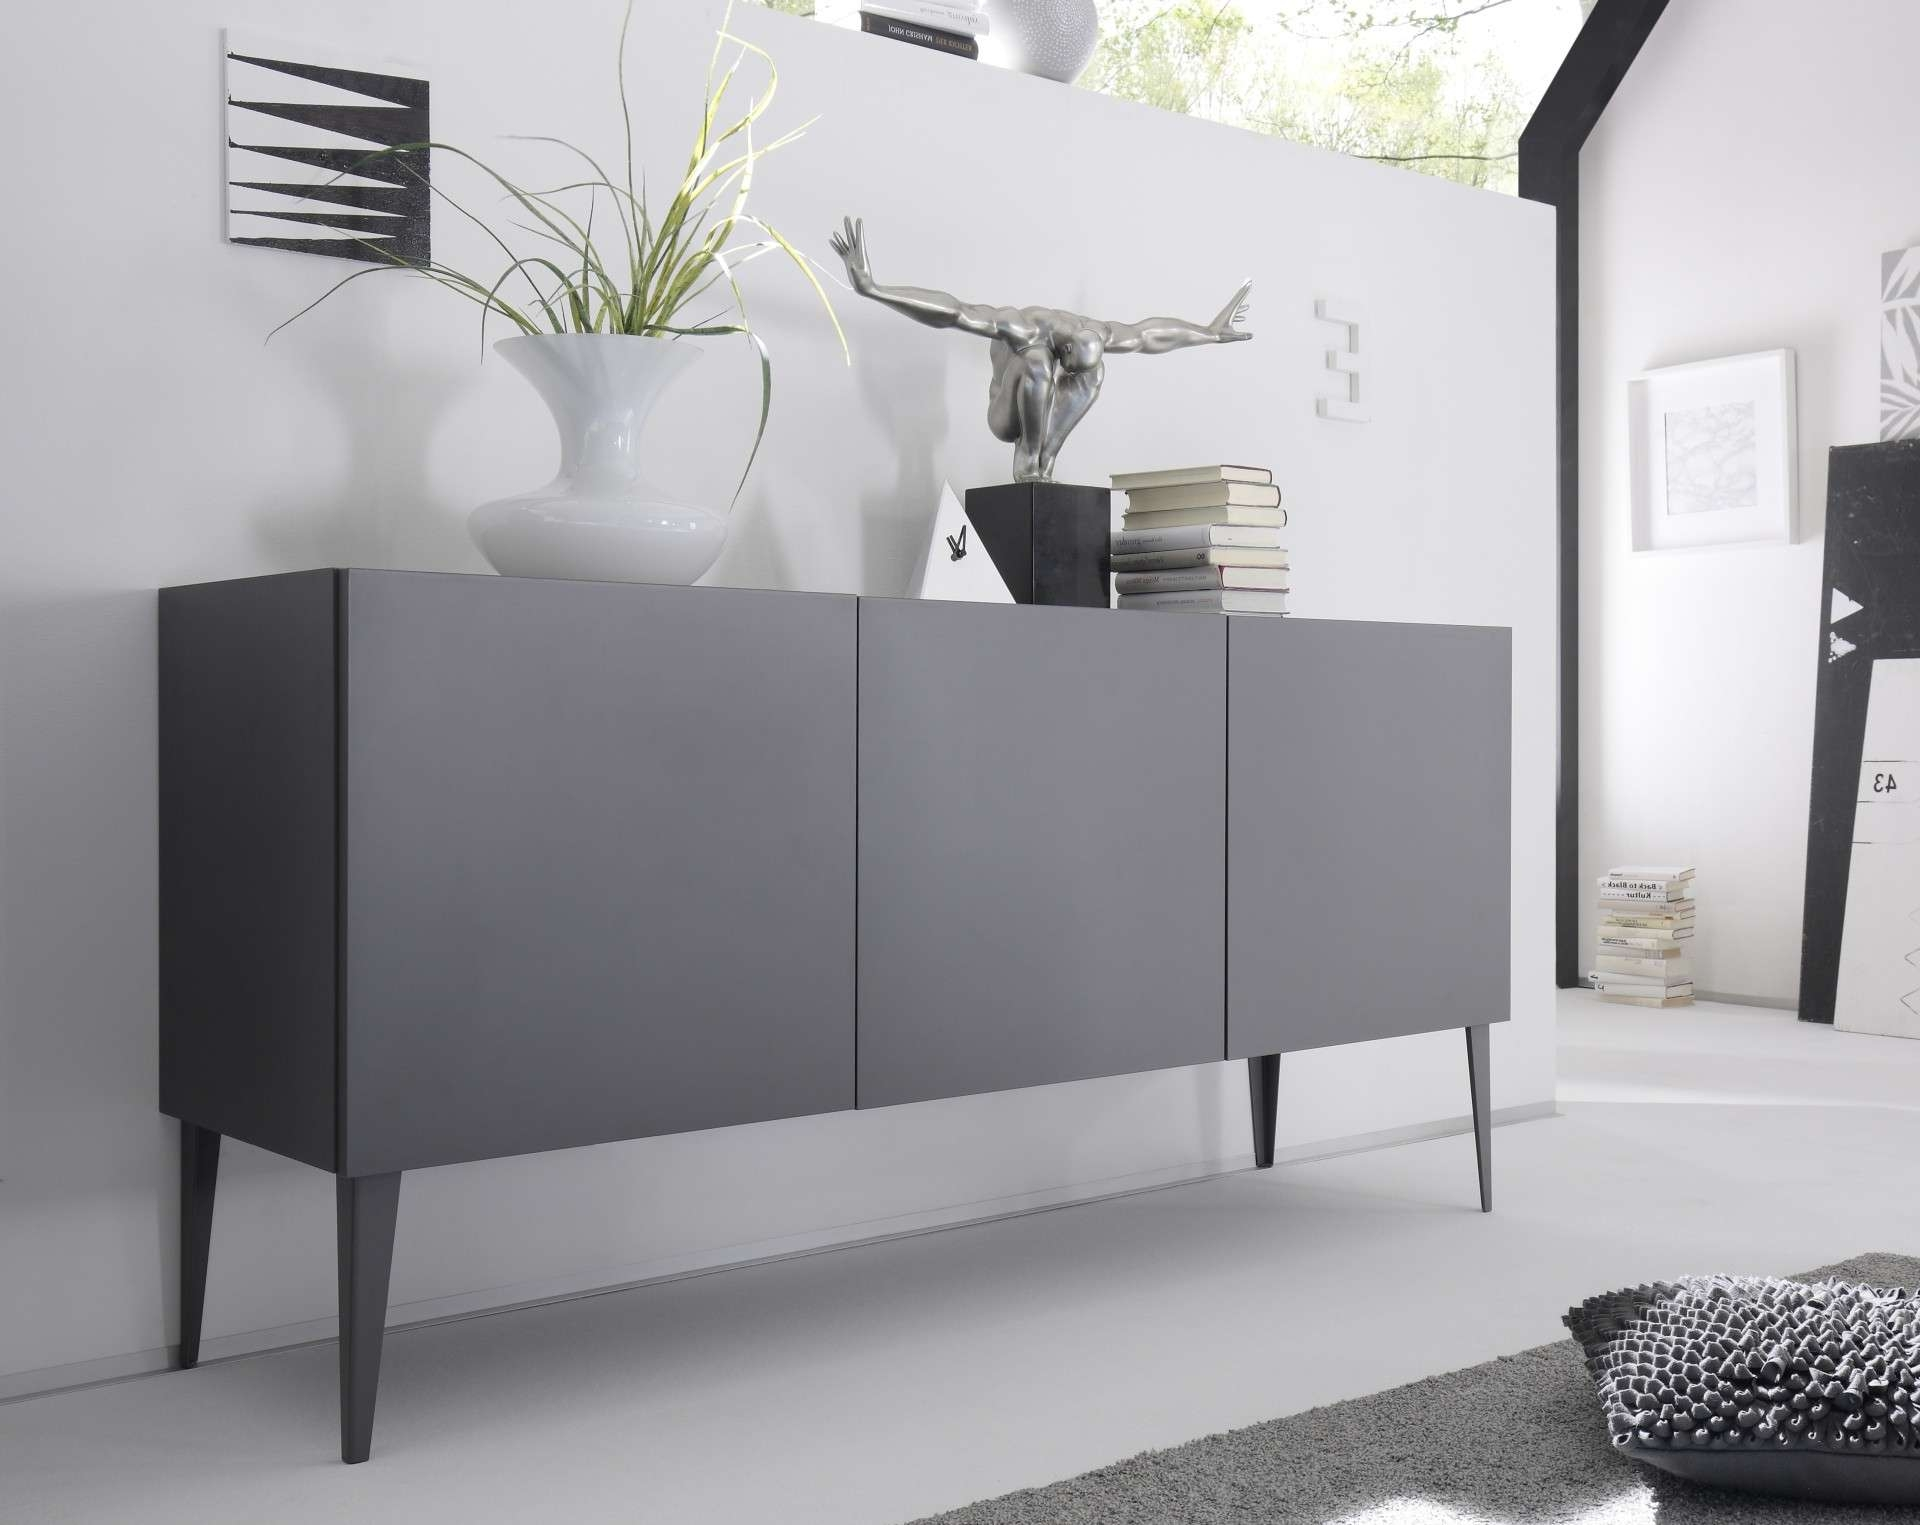 Livia – Grey Or White Matt Lacquered Sideboard – Sideboards – Sena Inside Grey Sideboards (View 10 of 20)